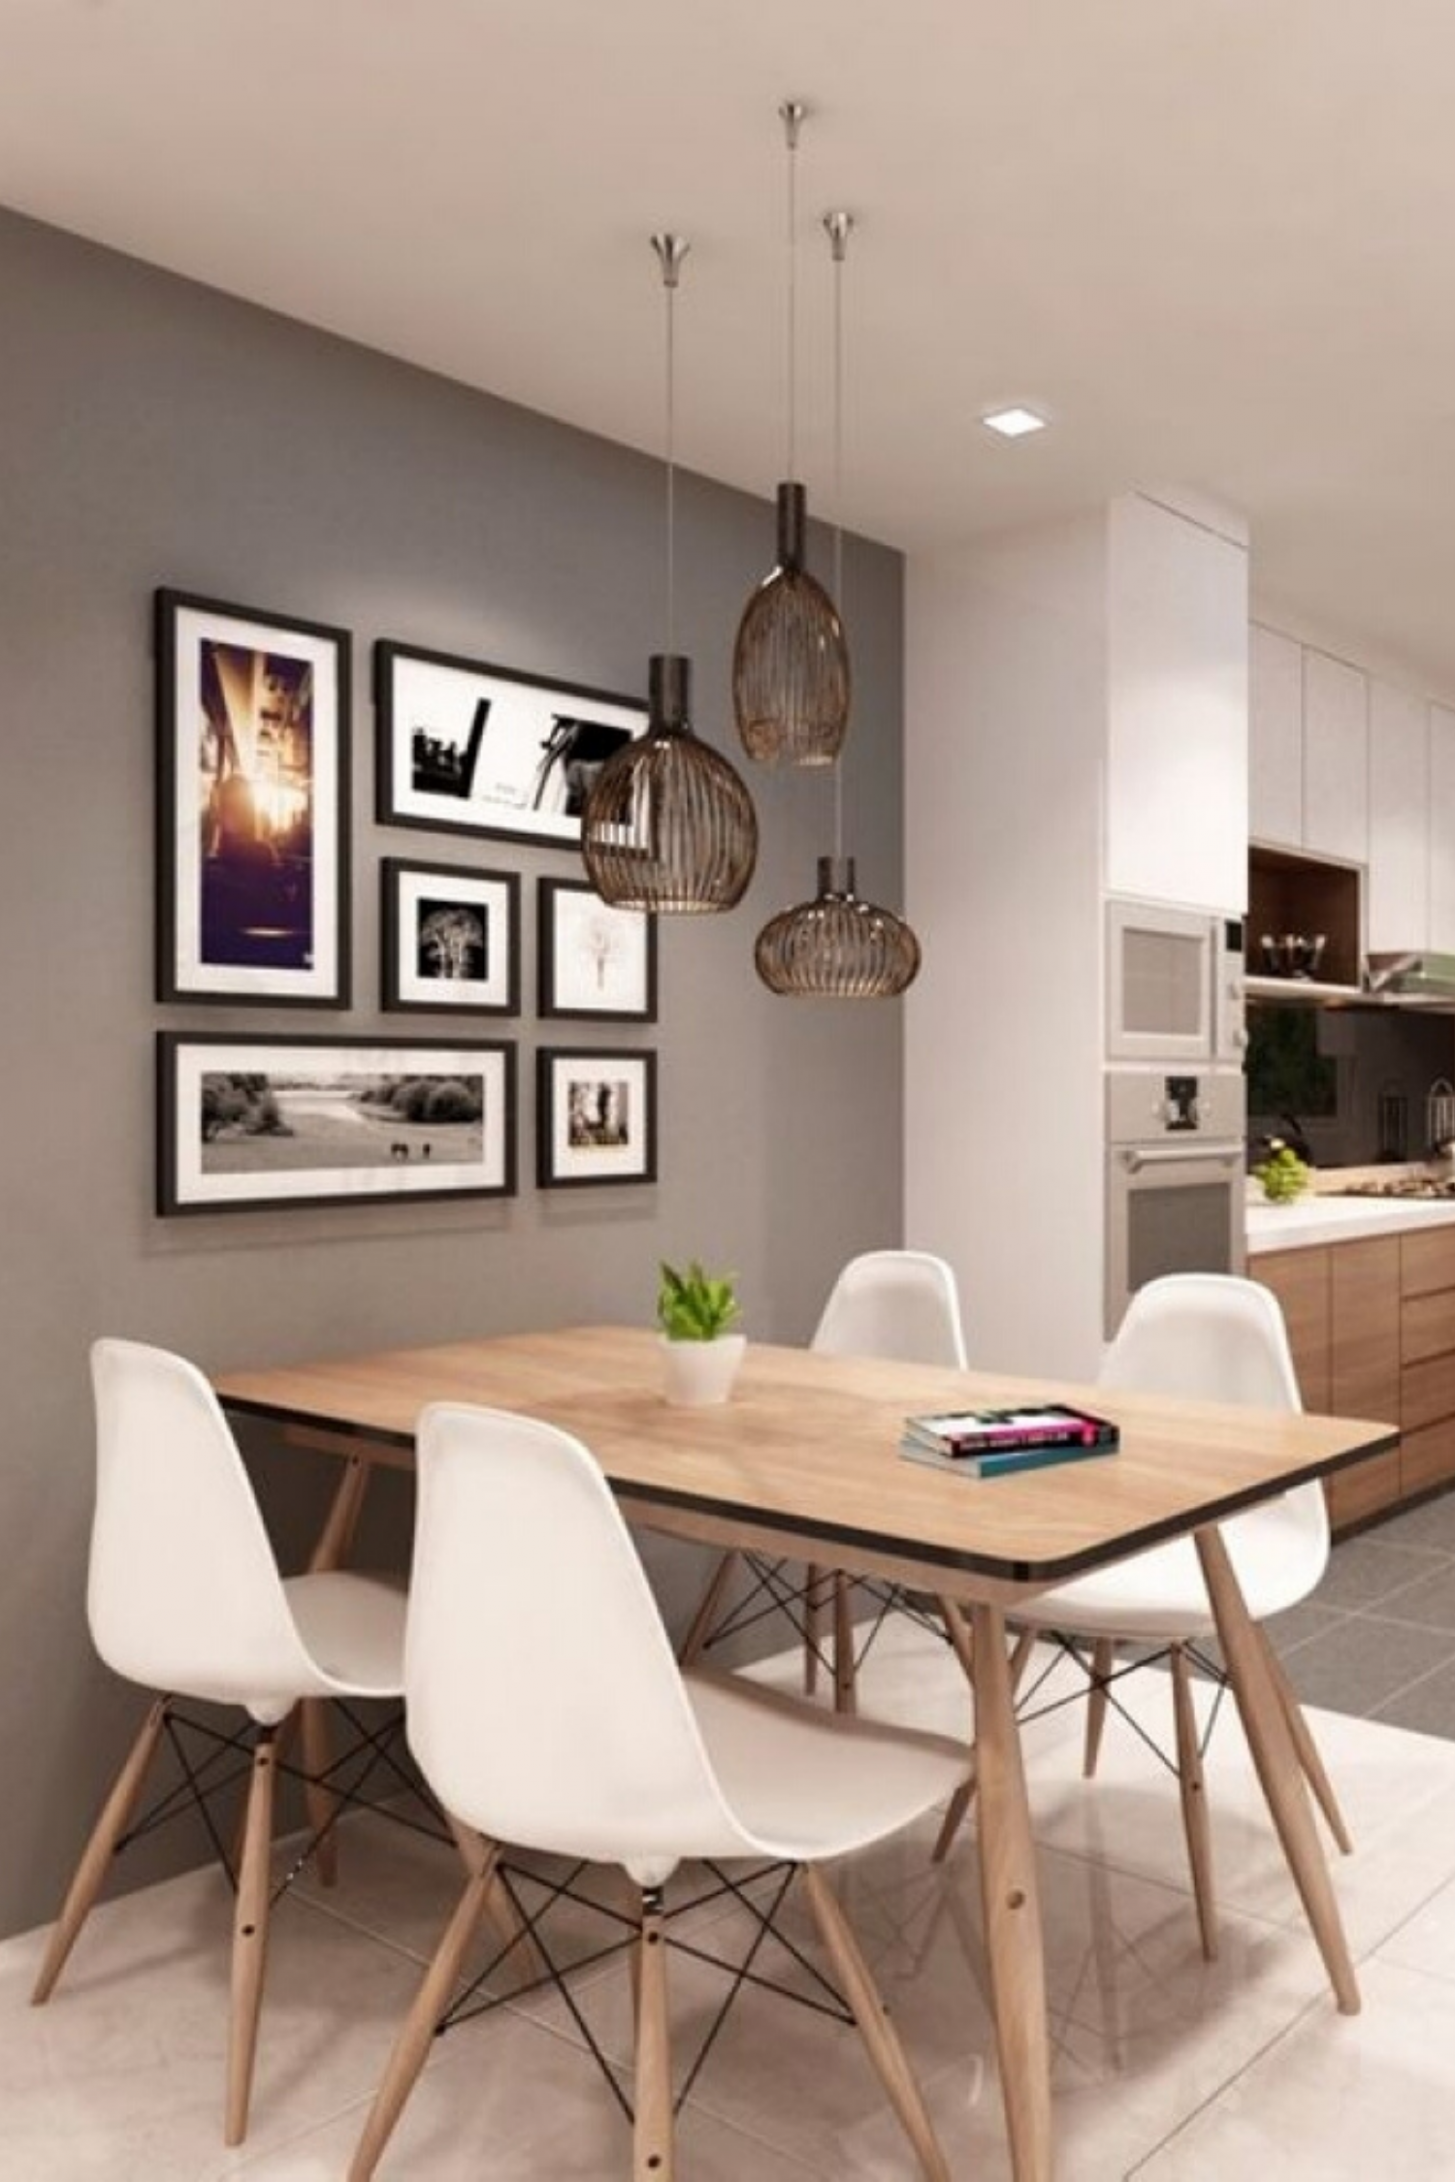 Pin on Decorate Studio Apartments - Dining Room Ideas For Apartments